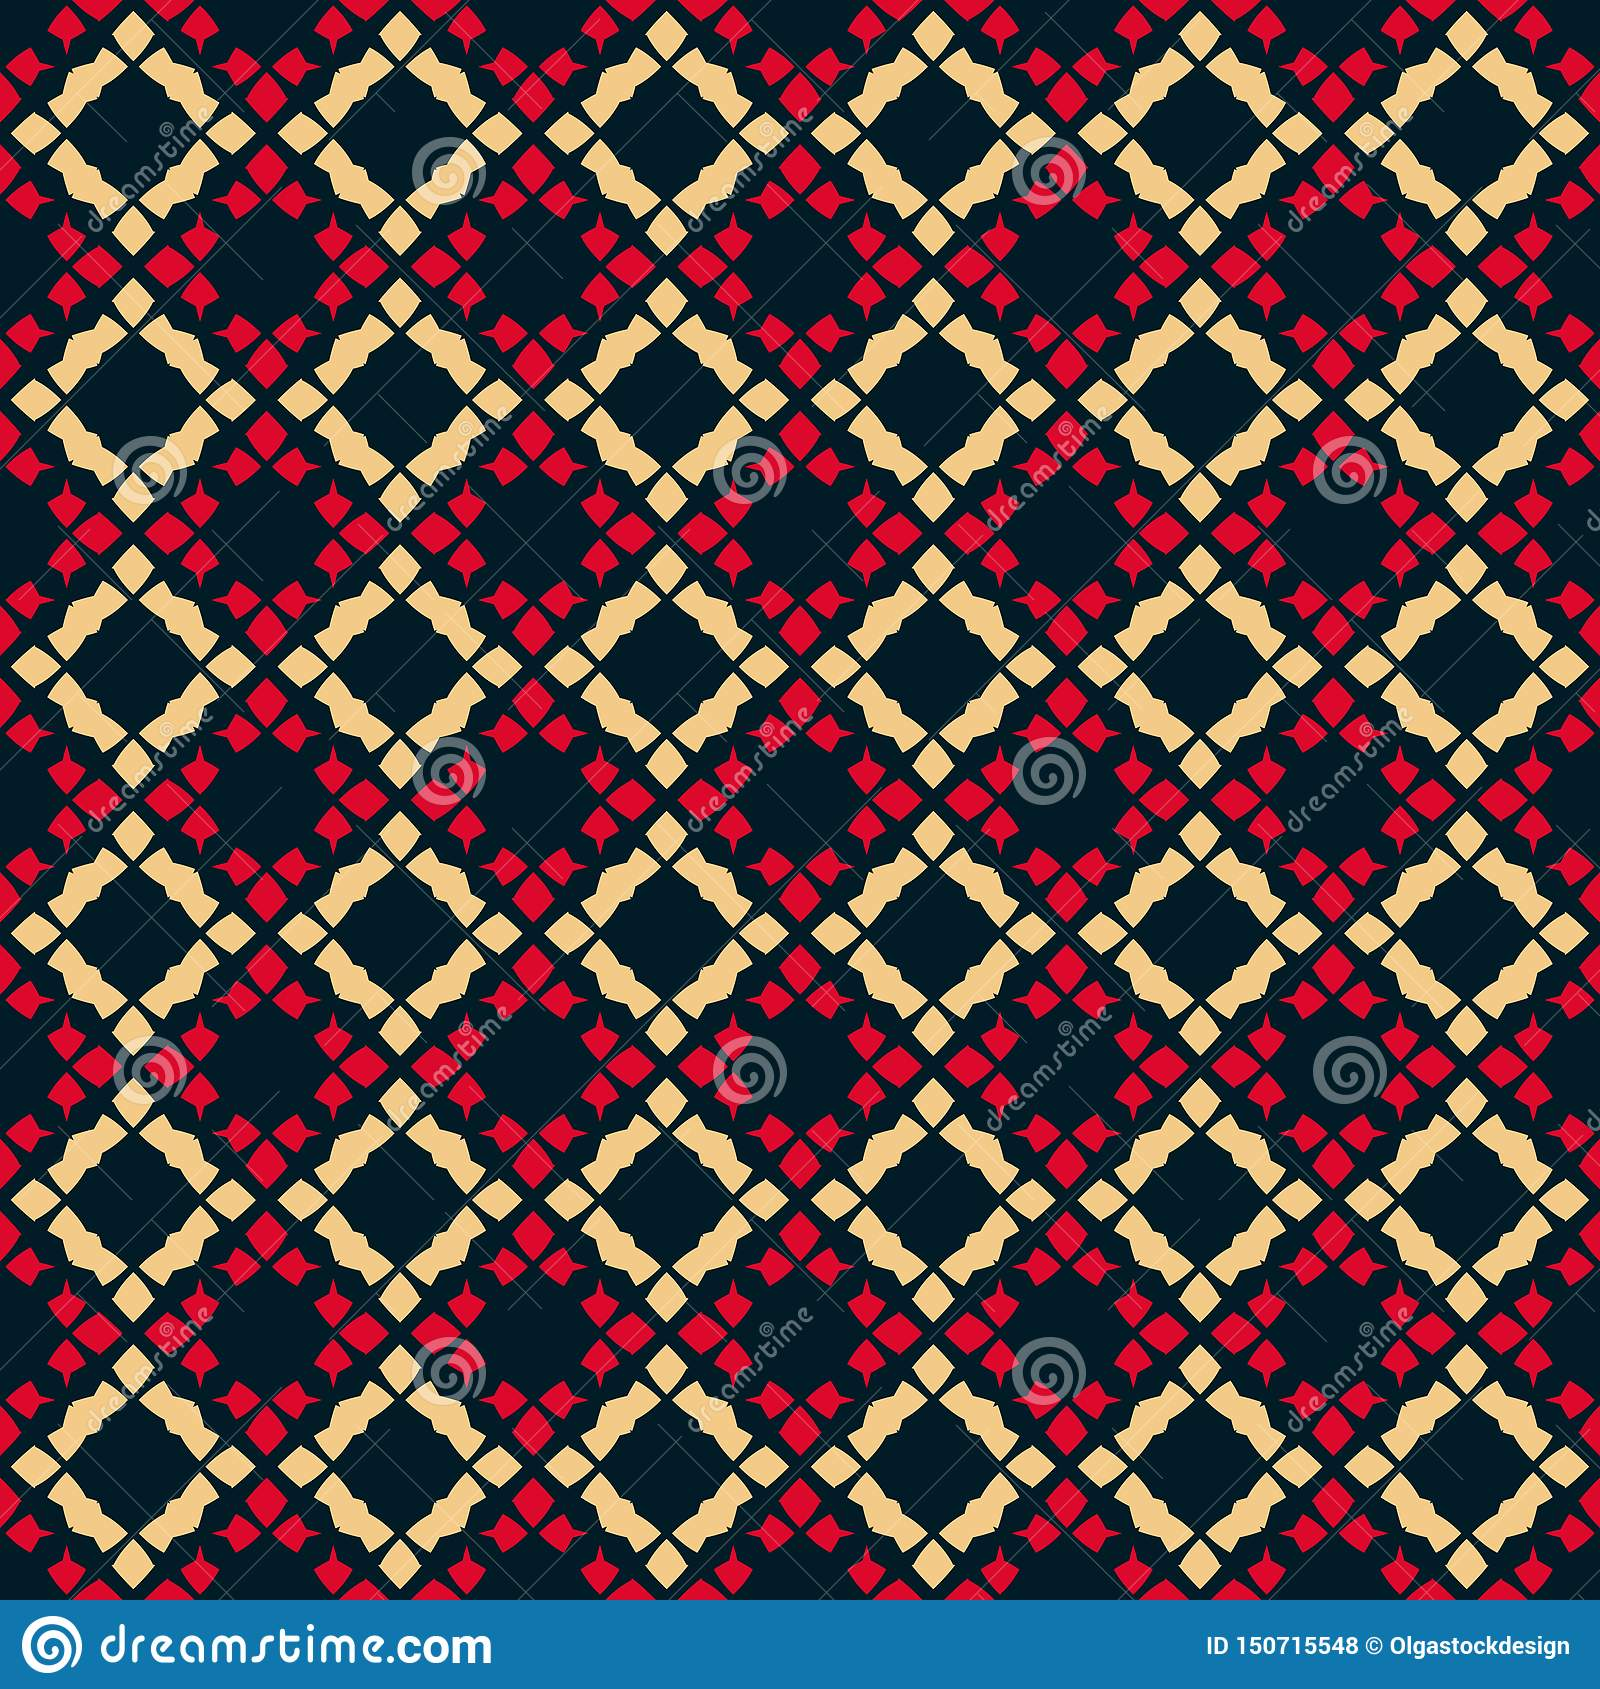 Vector geometric seamless pattern. Folk ornament. Black, red and yellow colors